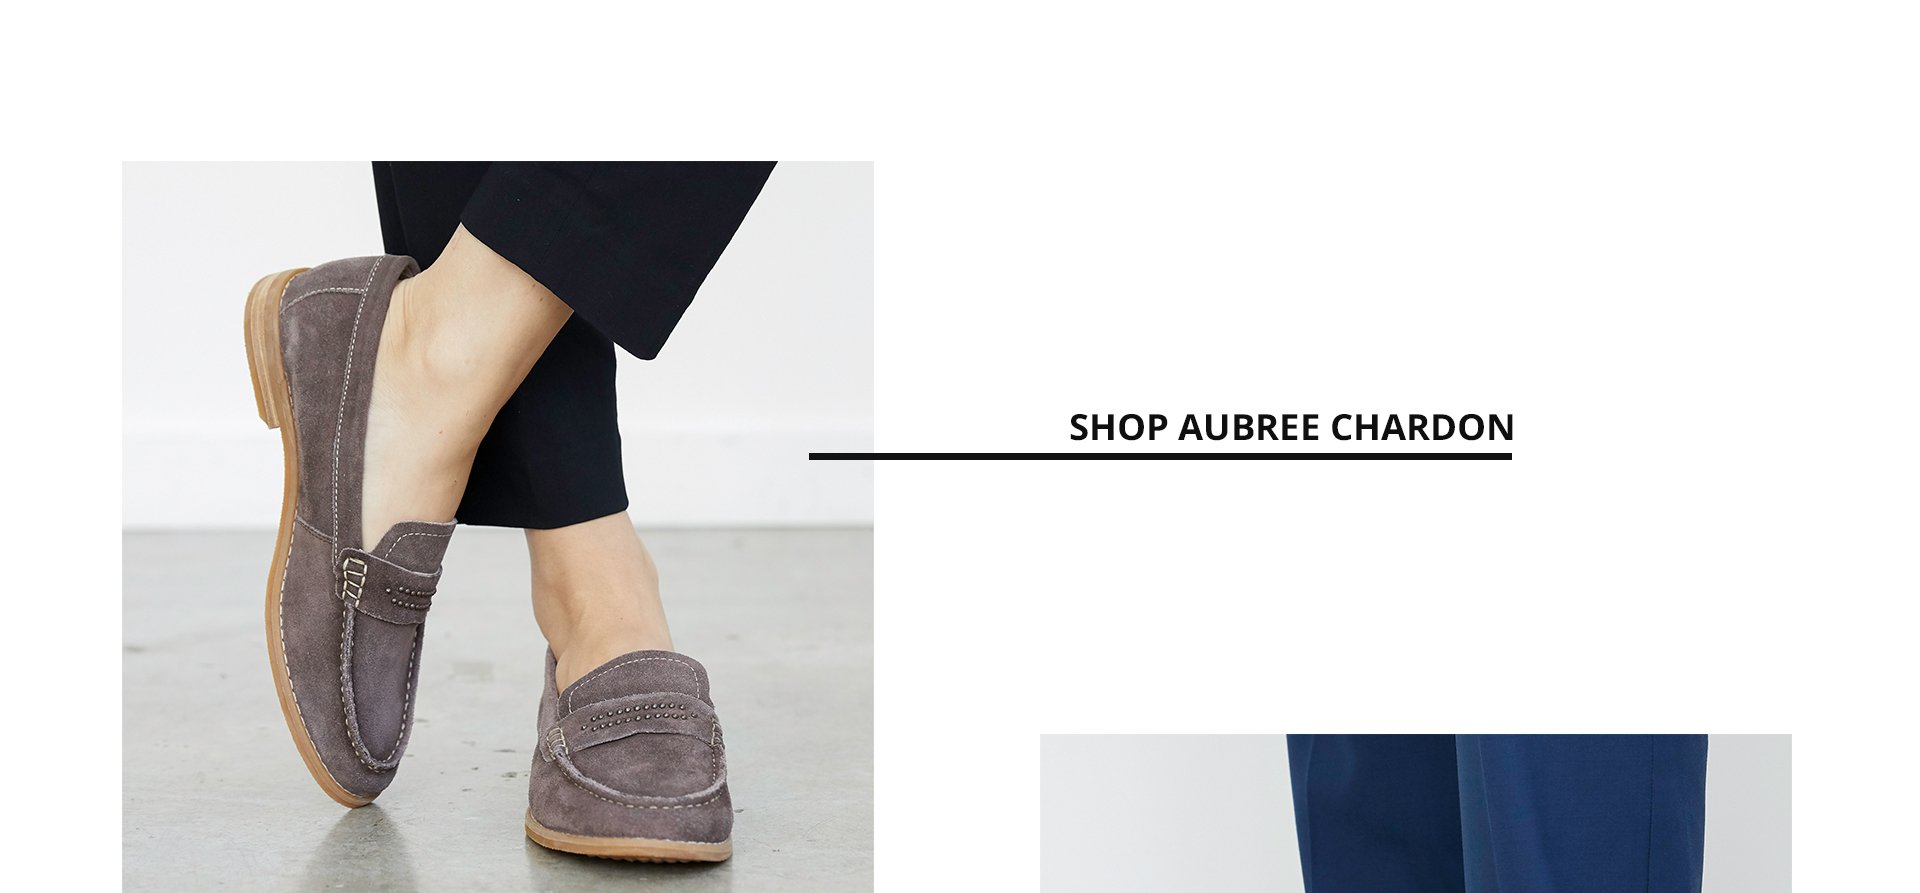 Shop Aubree Chardon